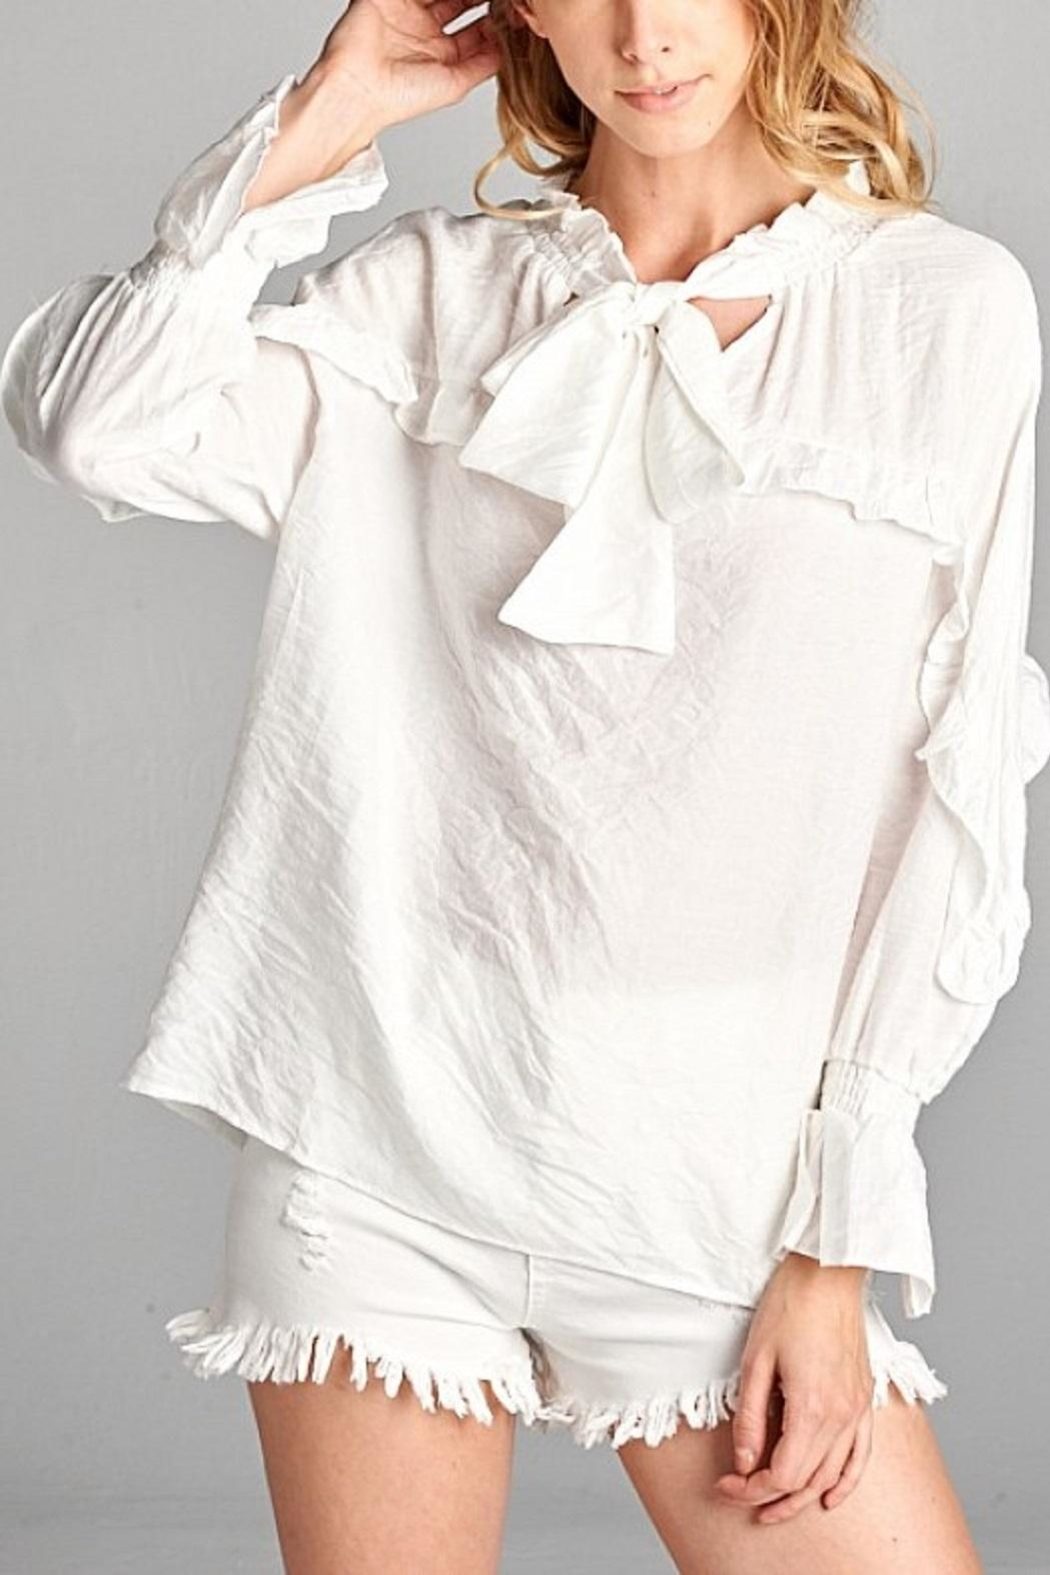 ed8a9177c45 Ellison White Ruffle Button Down from Georgia by Posh Clothing ...